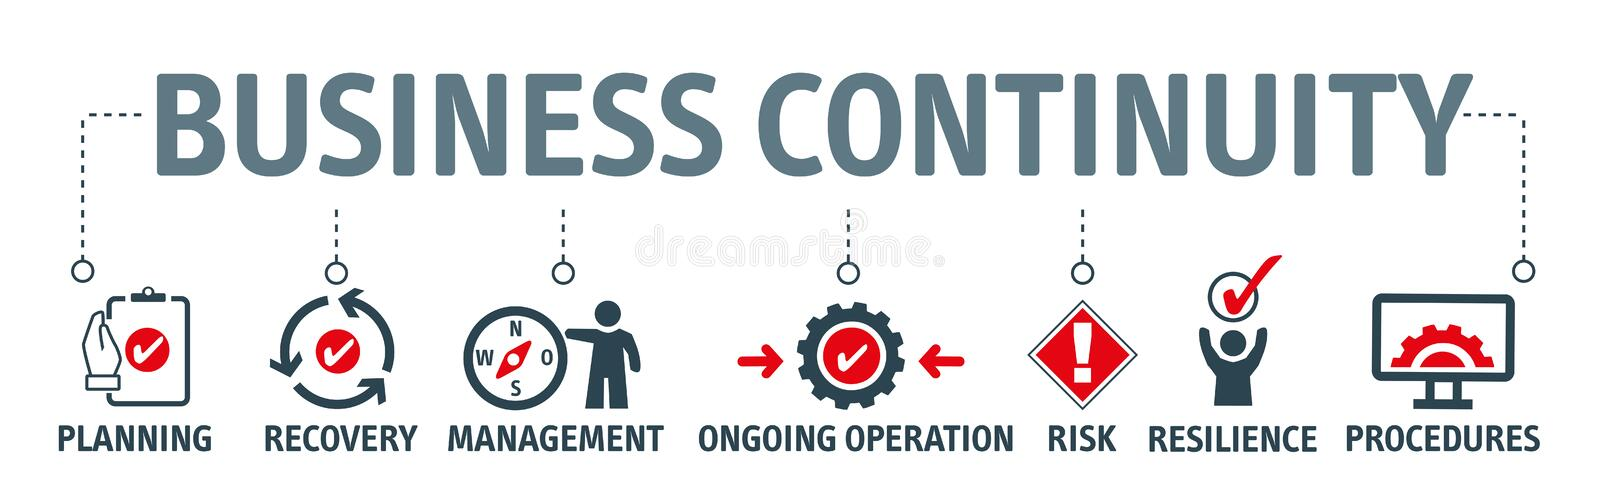 Banner Business continuity planning concept. Business continuity planning - the process of creating systems of prevention and recovery to deal with potential royalty free illustration